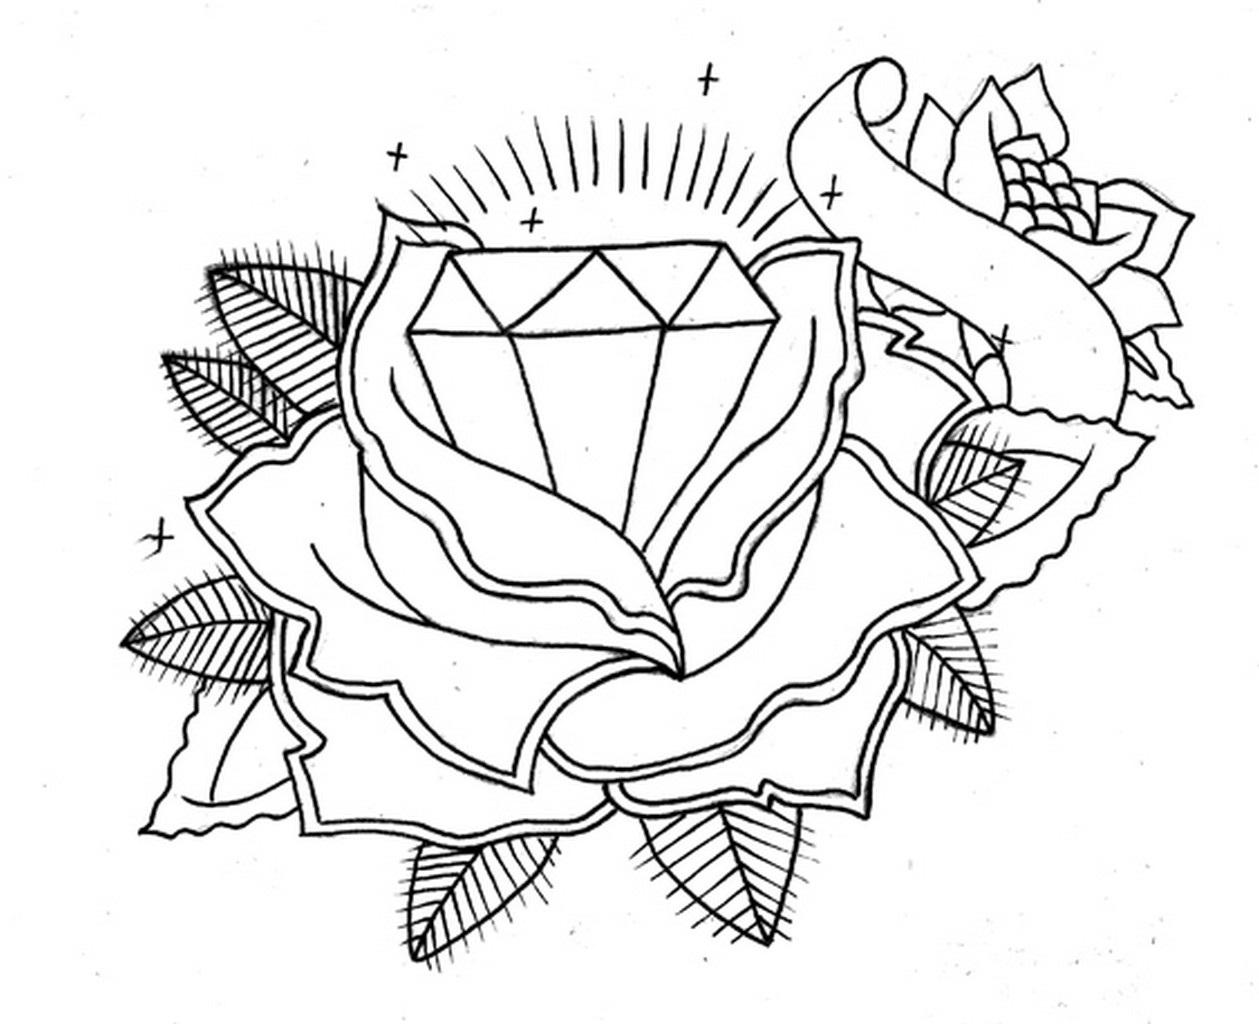 c6030e461 Diamond Tattoos Designs, Ideas and Meaning | Tattoos For You